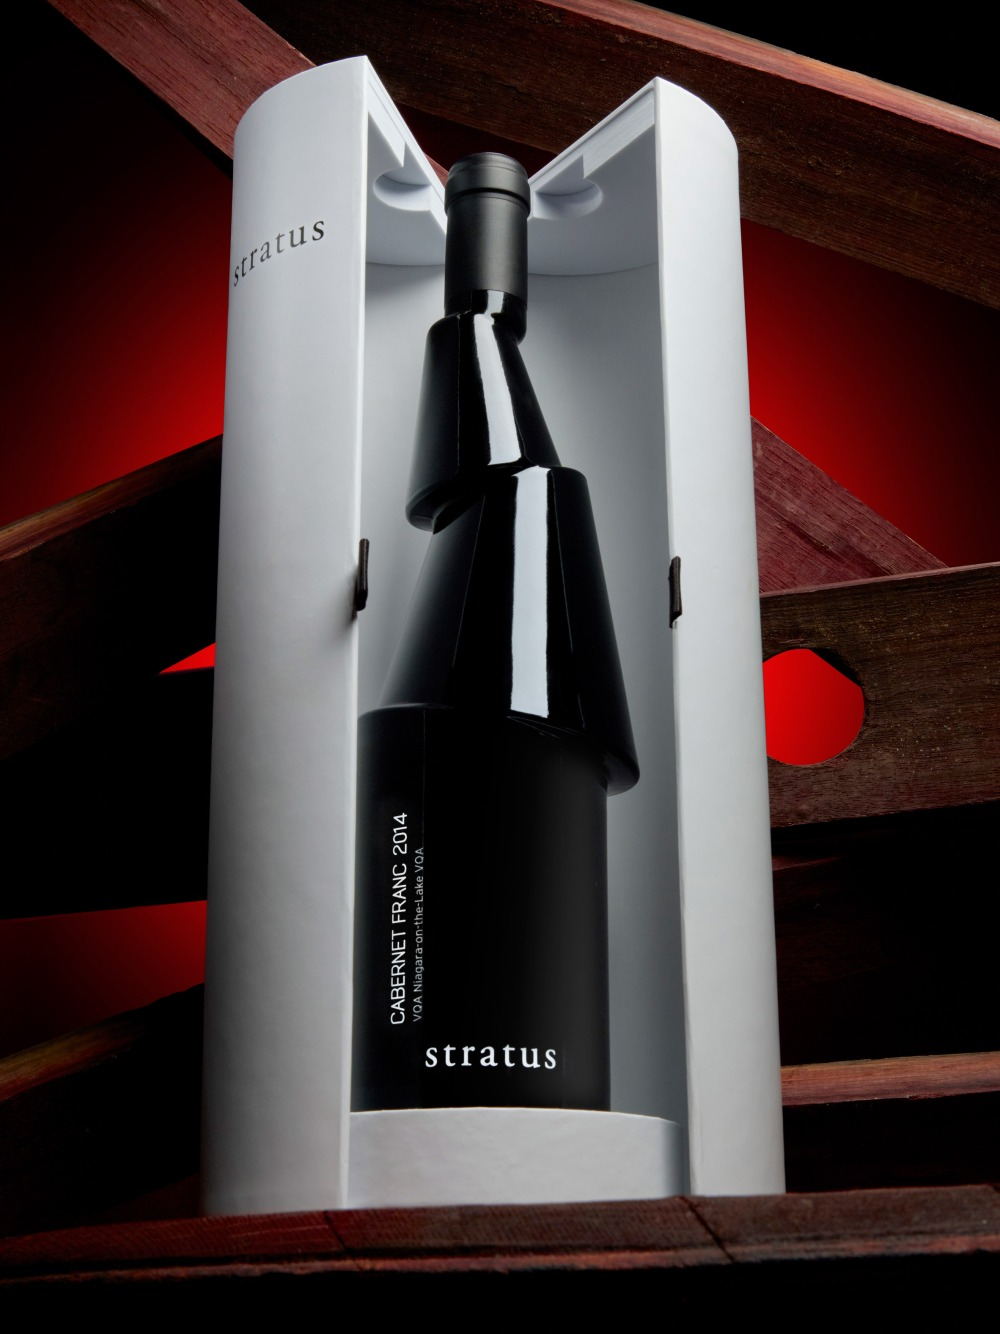 decanter-karim-rashid-deconstruct-wine-bottle-design-new-york-usa_dezeen_3